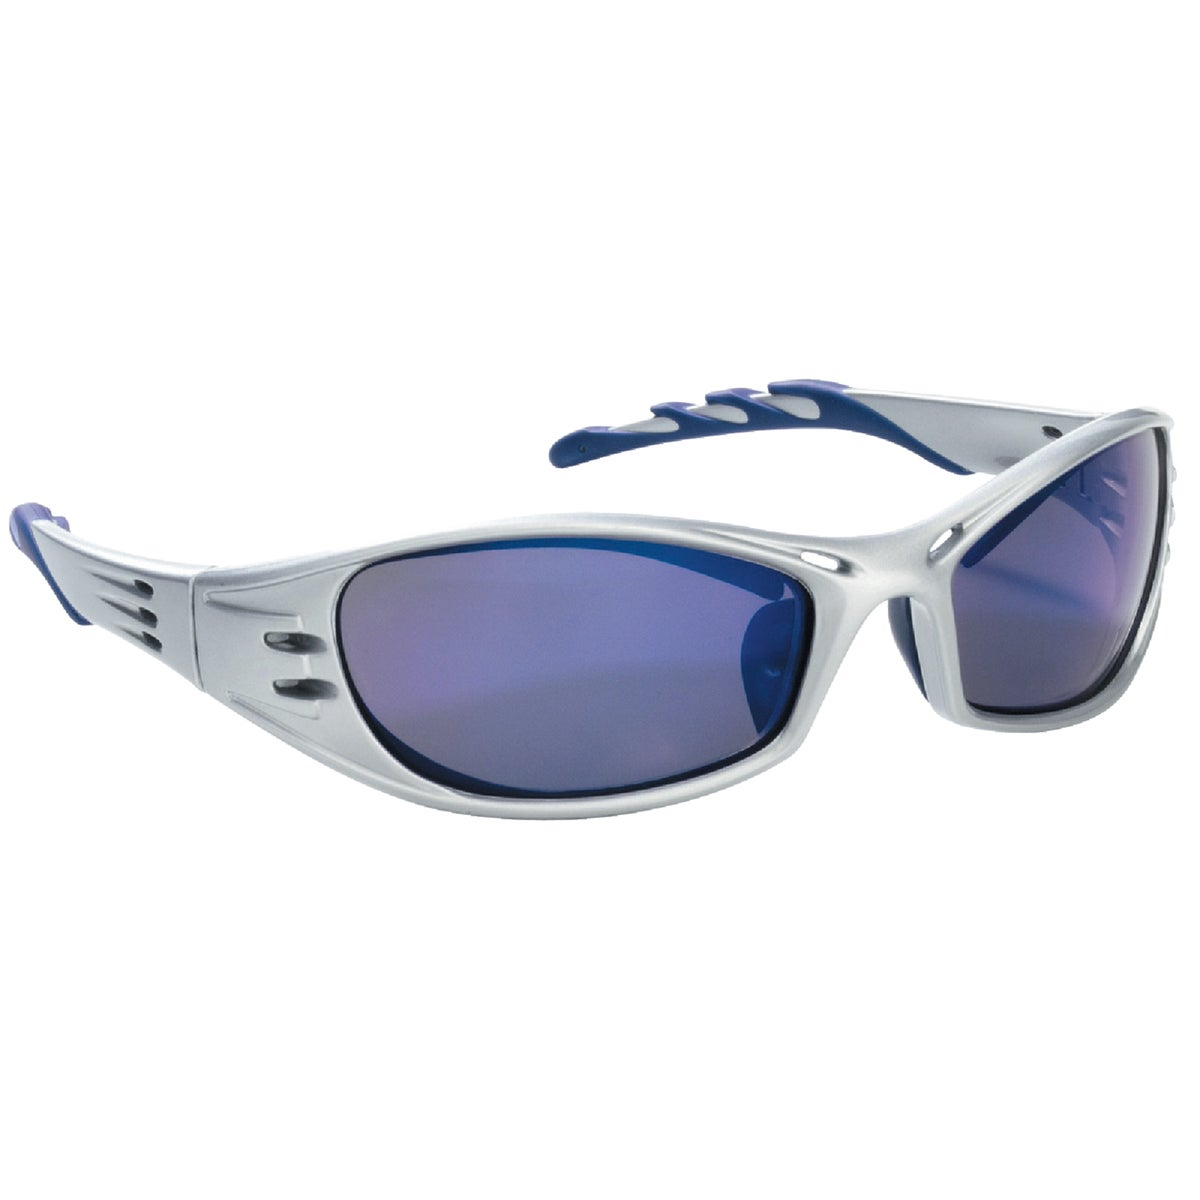 BLUE SAFETY SUNGLASSES - 90988-80025 by 3m Co